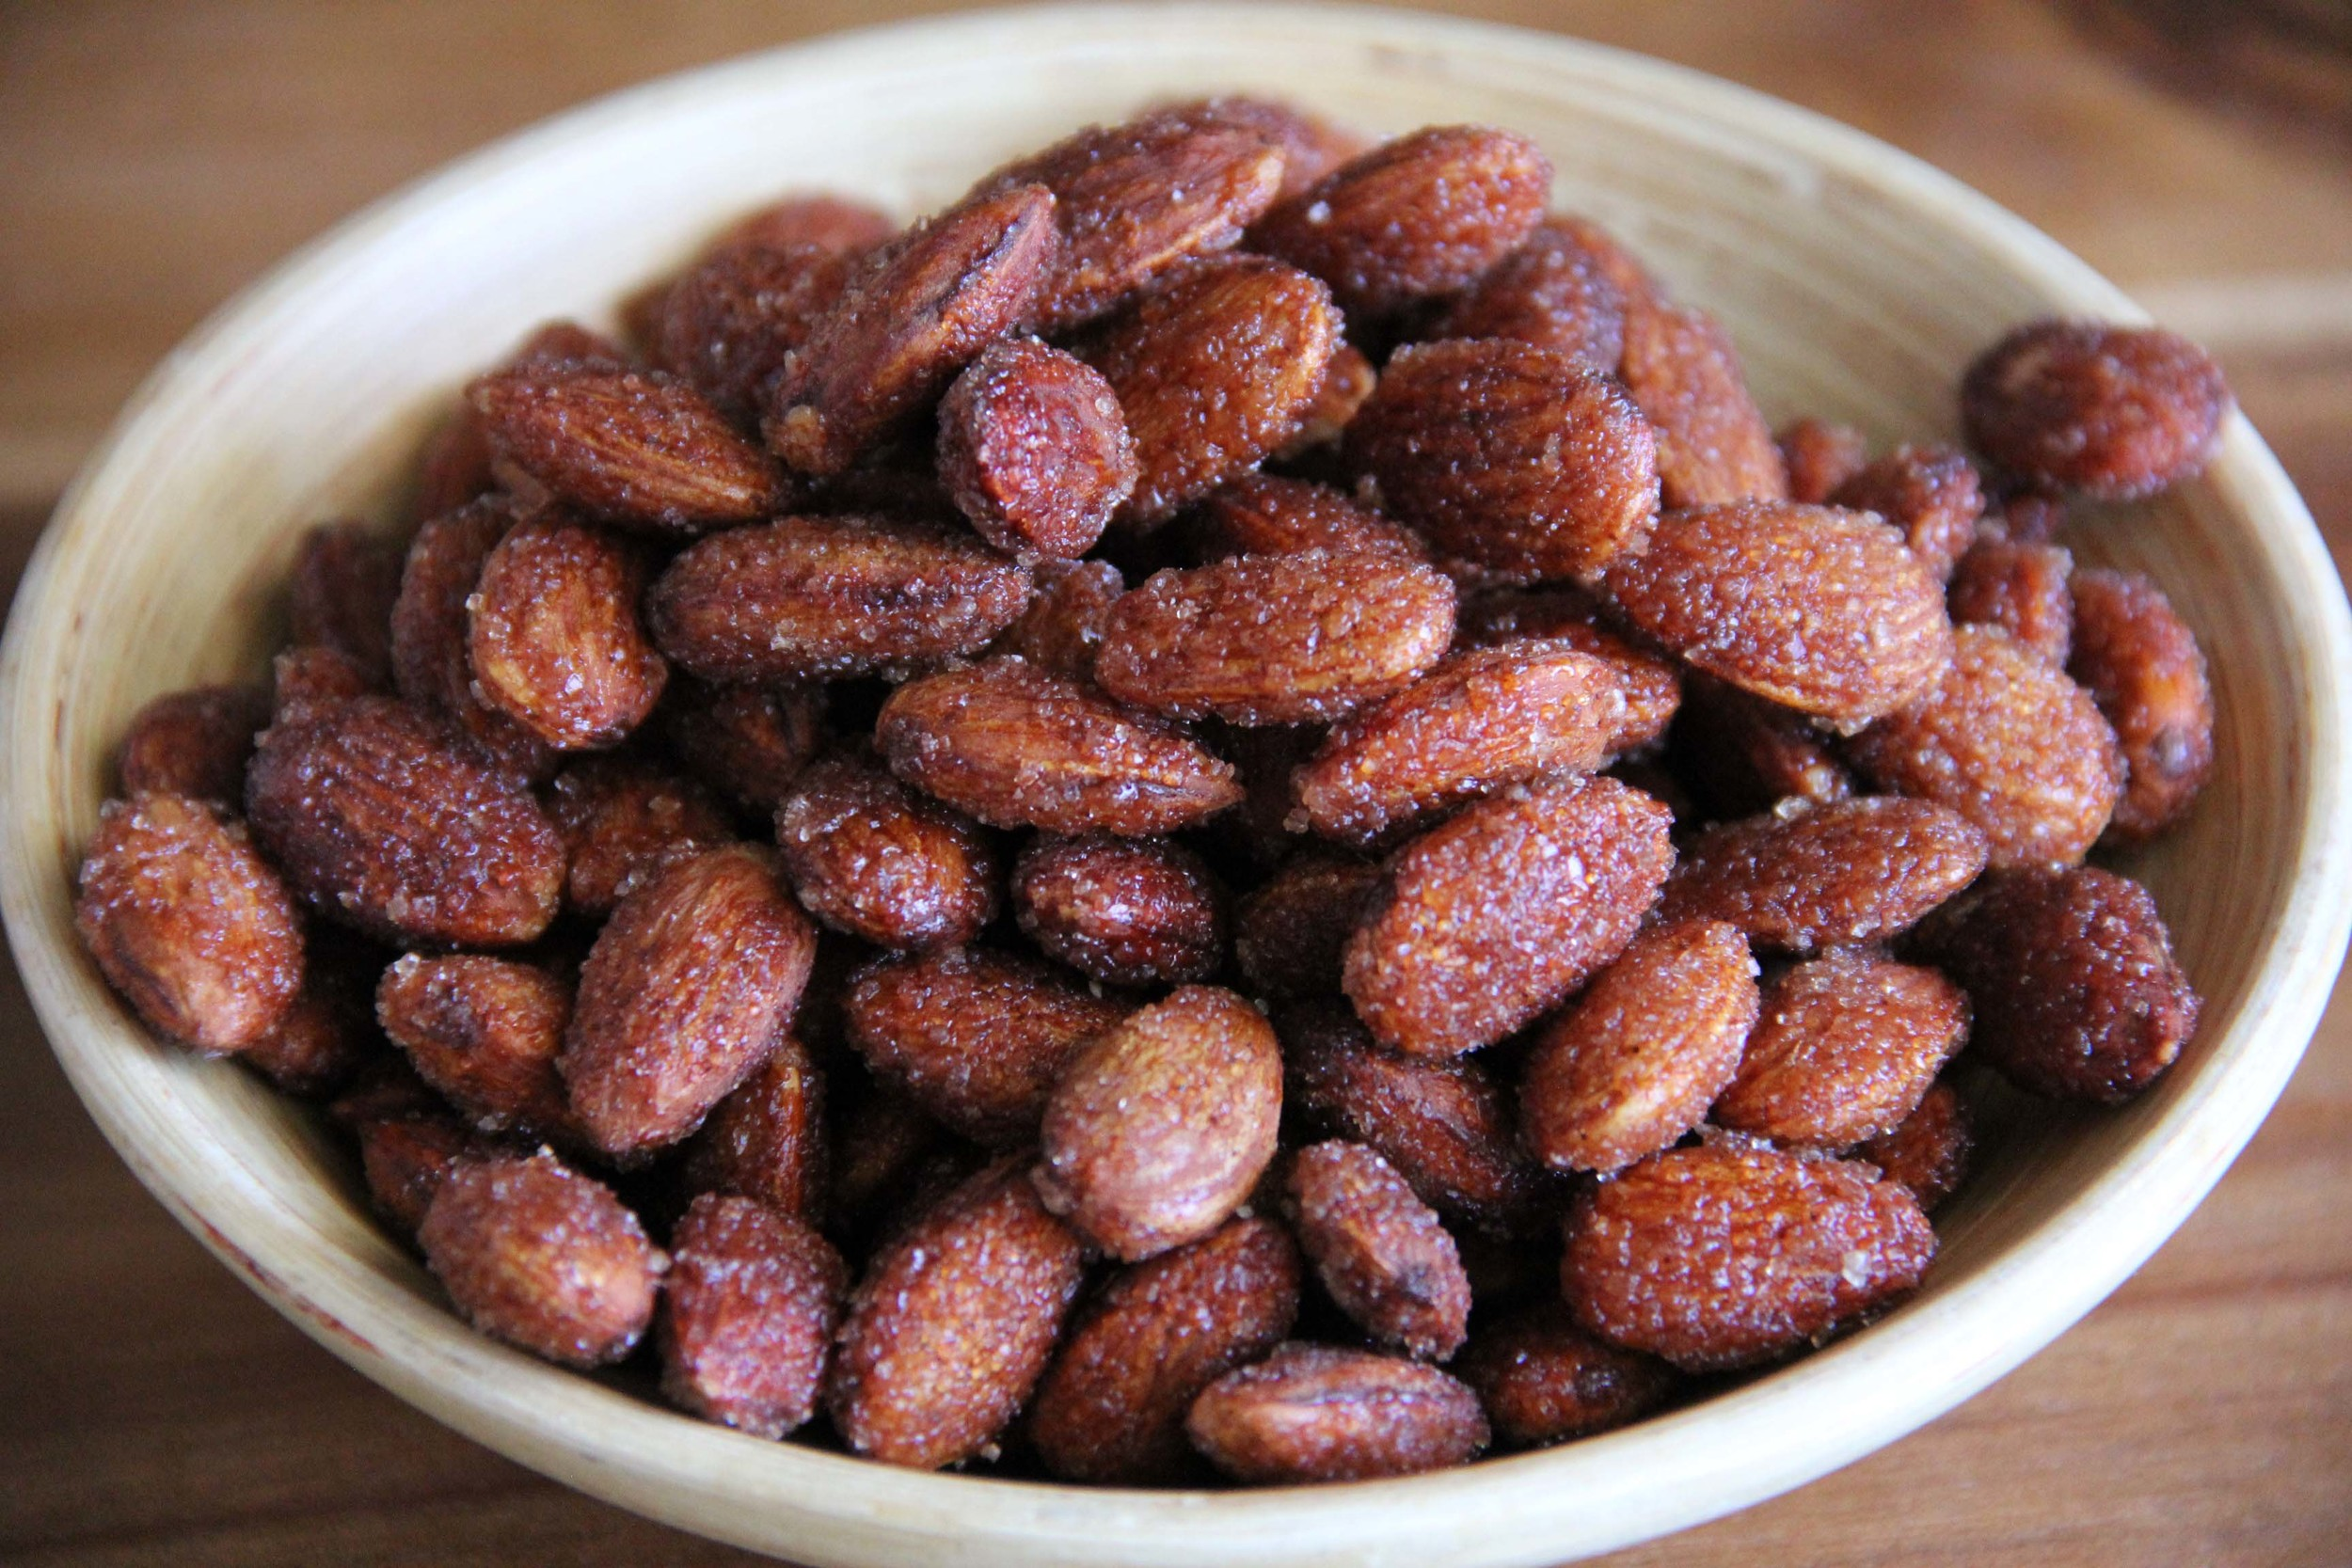 Made By Marissa > Handmade in Hawaii > Product > Cinnamon Agave Almonds > Product 4.jpg